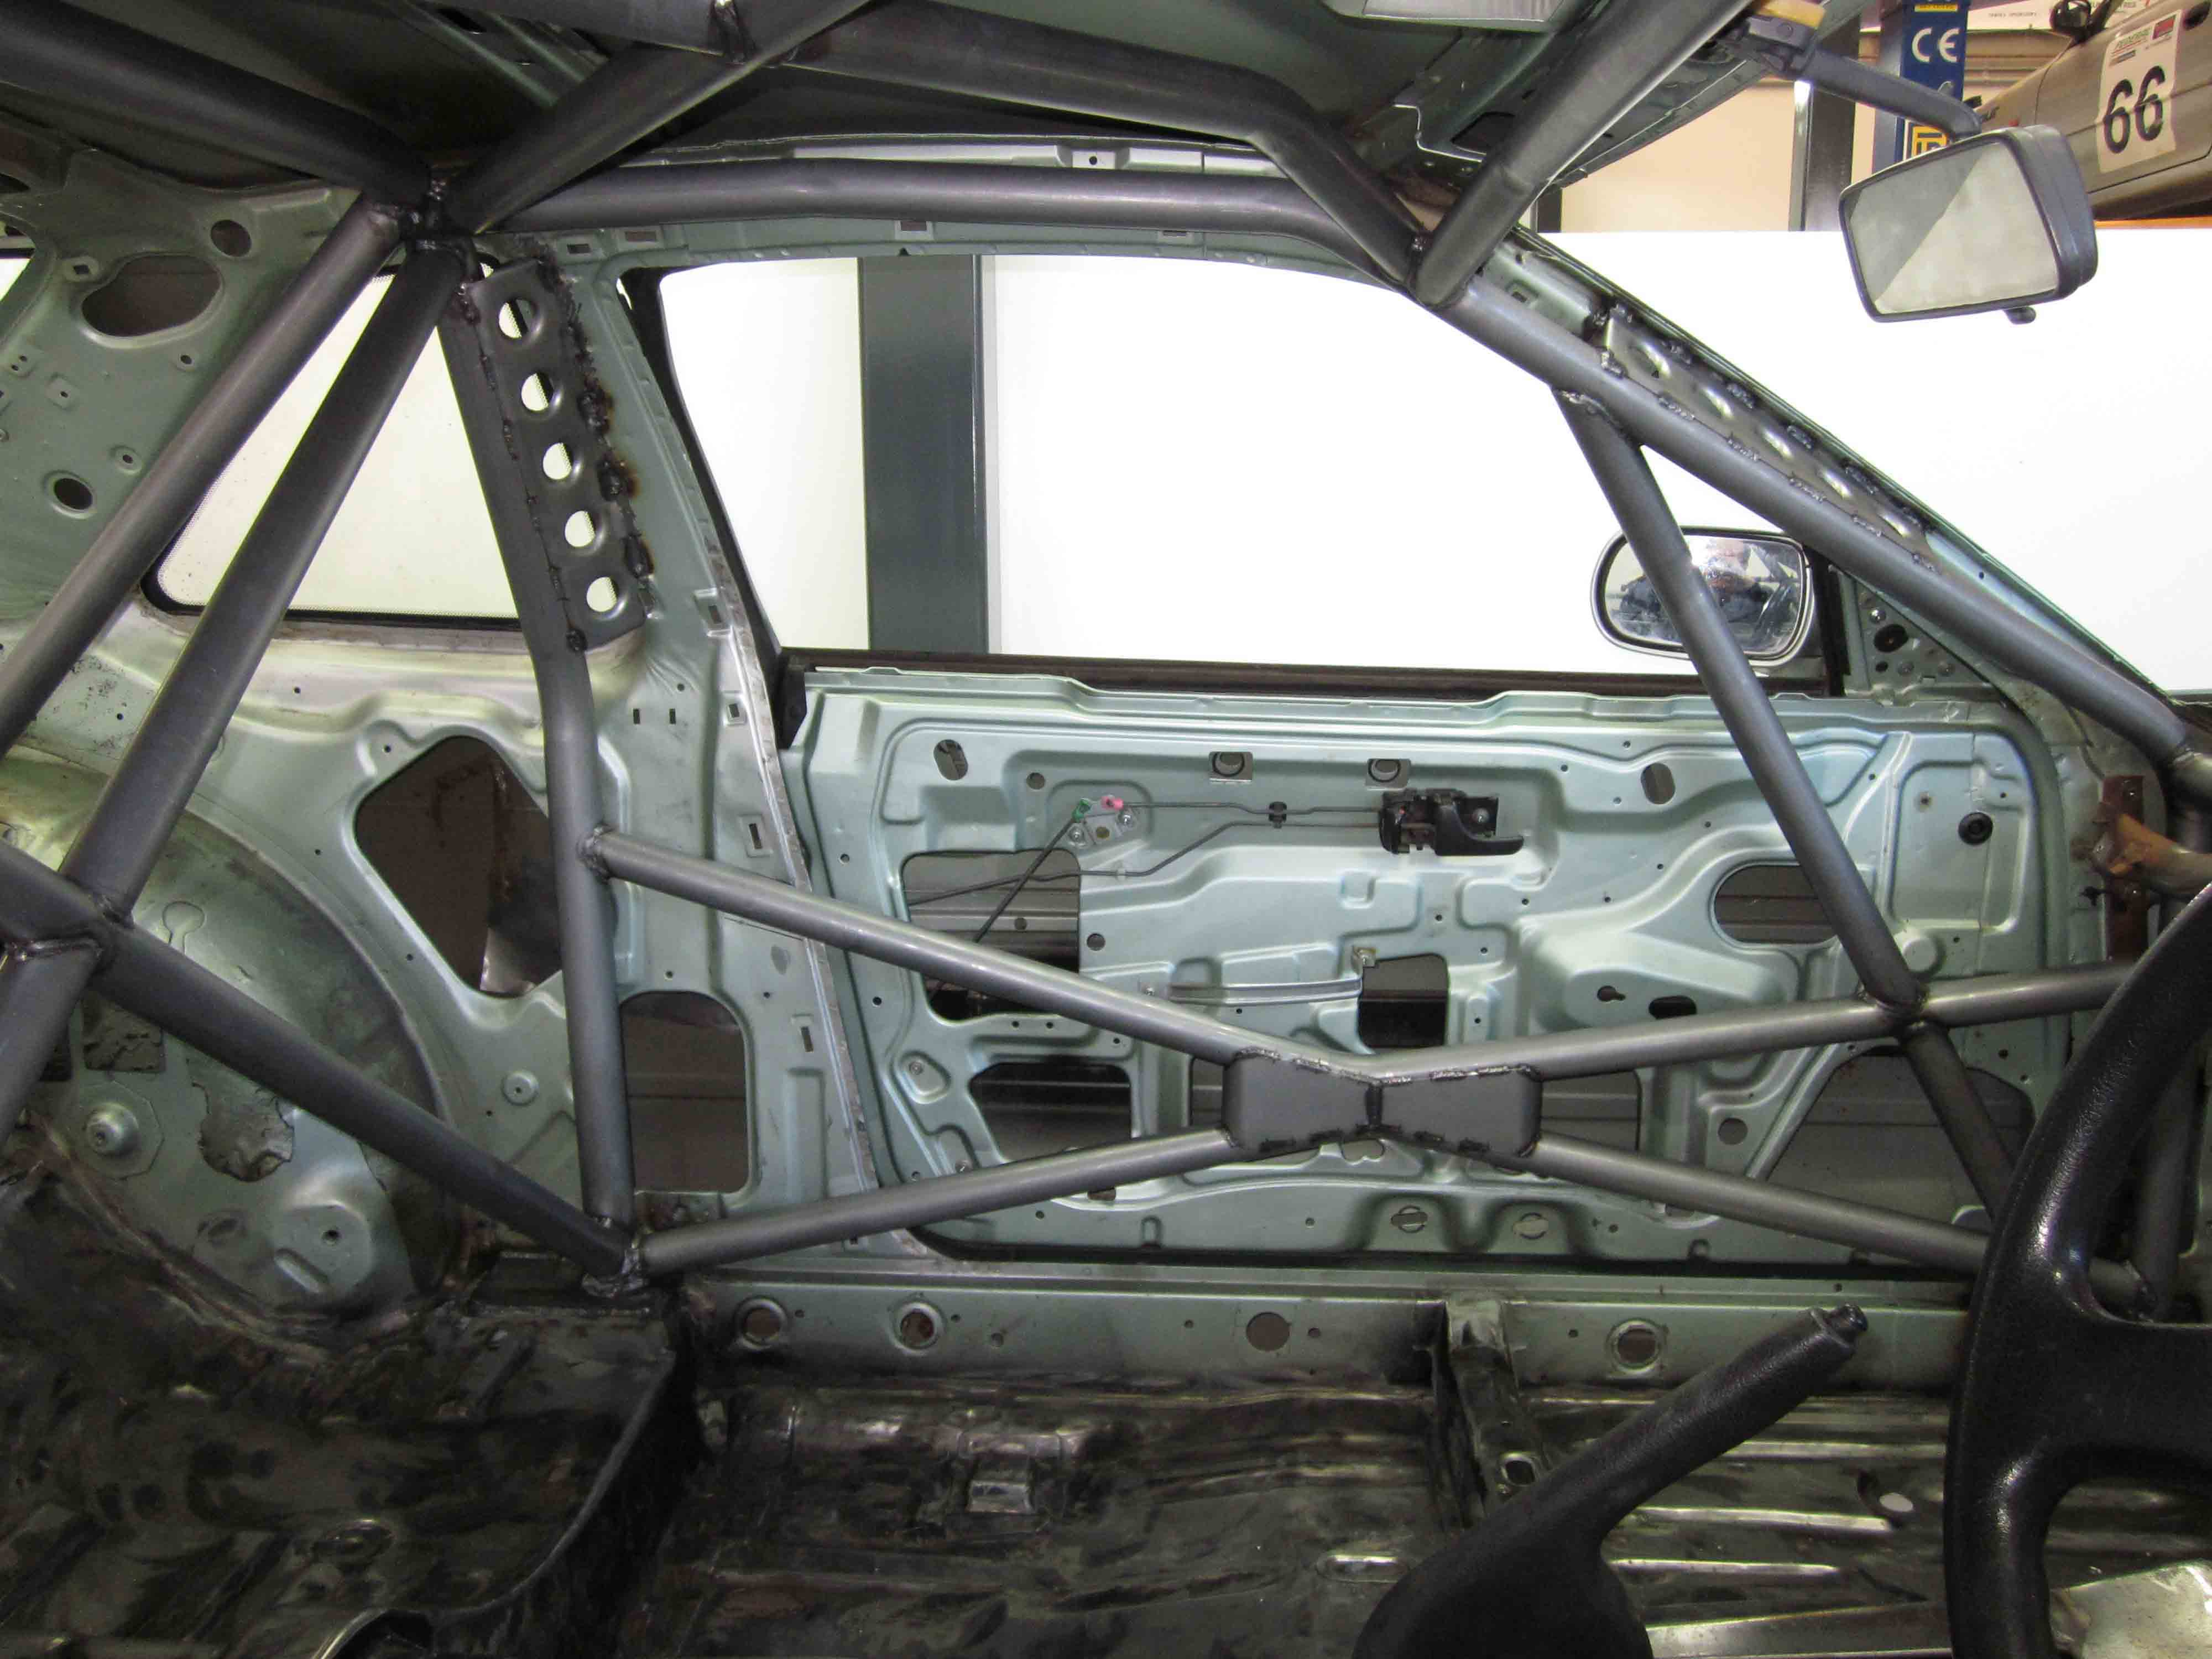 (H) Nissan Silvia S13 - Full Cage (6 point) - Weld in